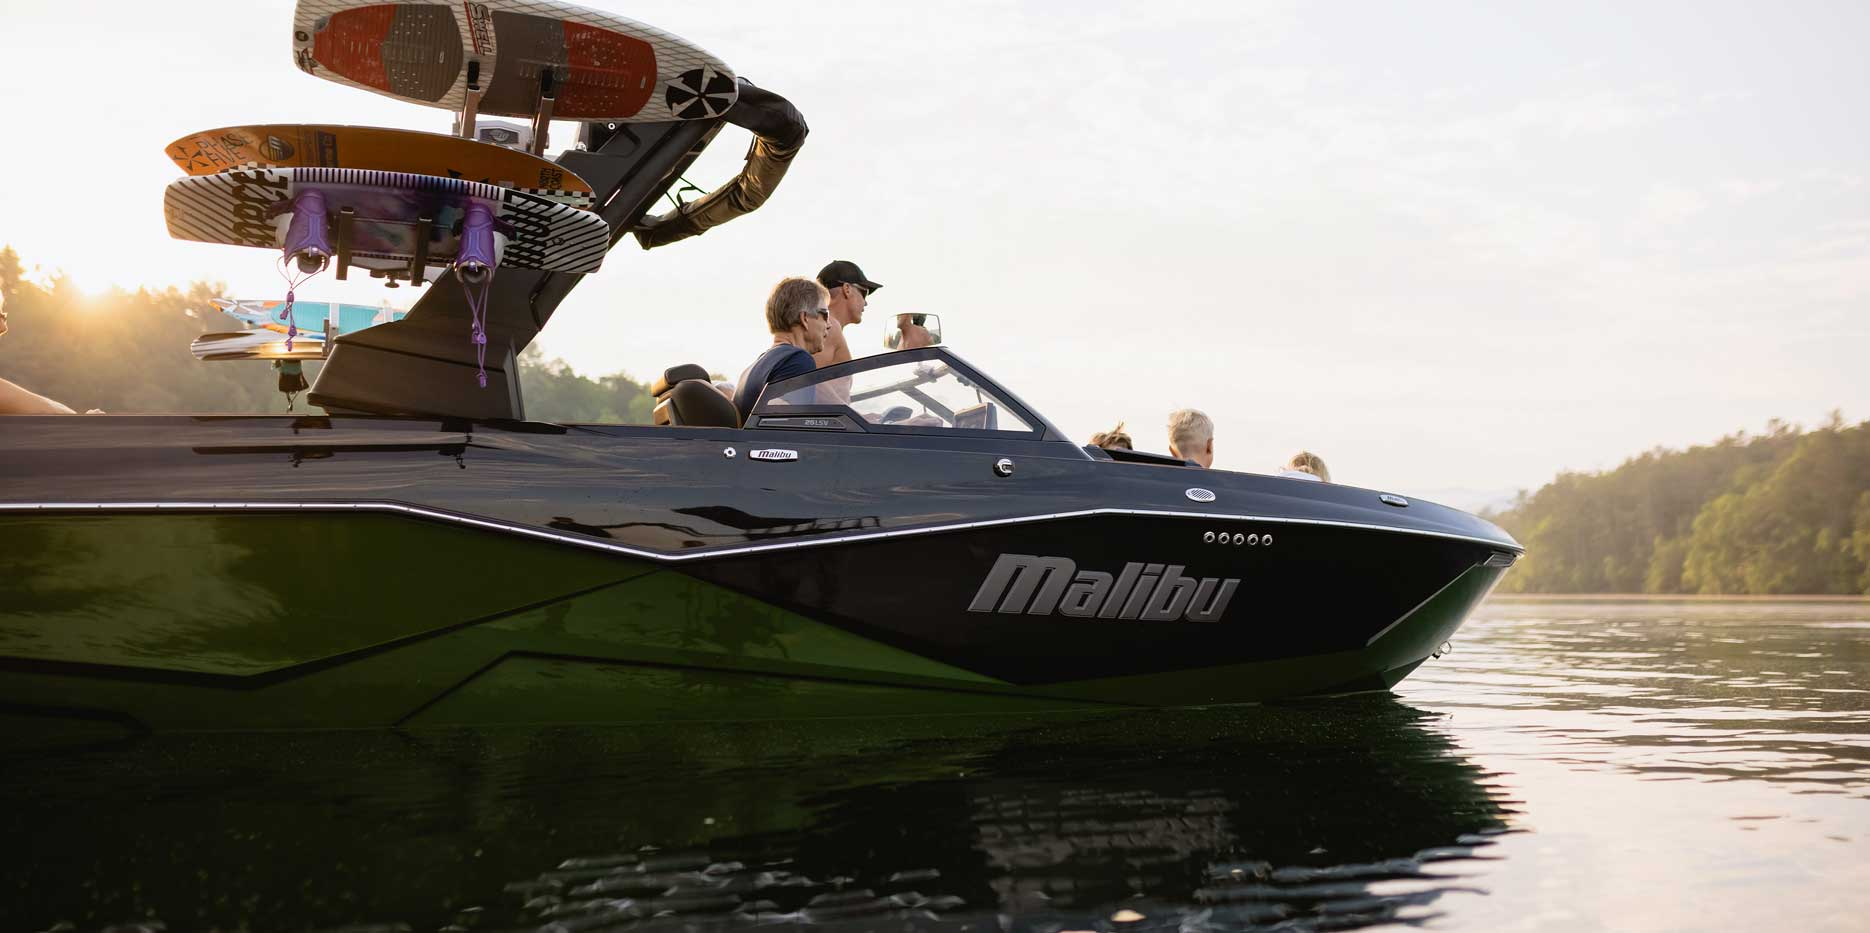 Relax in the all-new 25 LSV